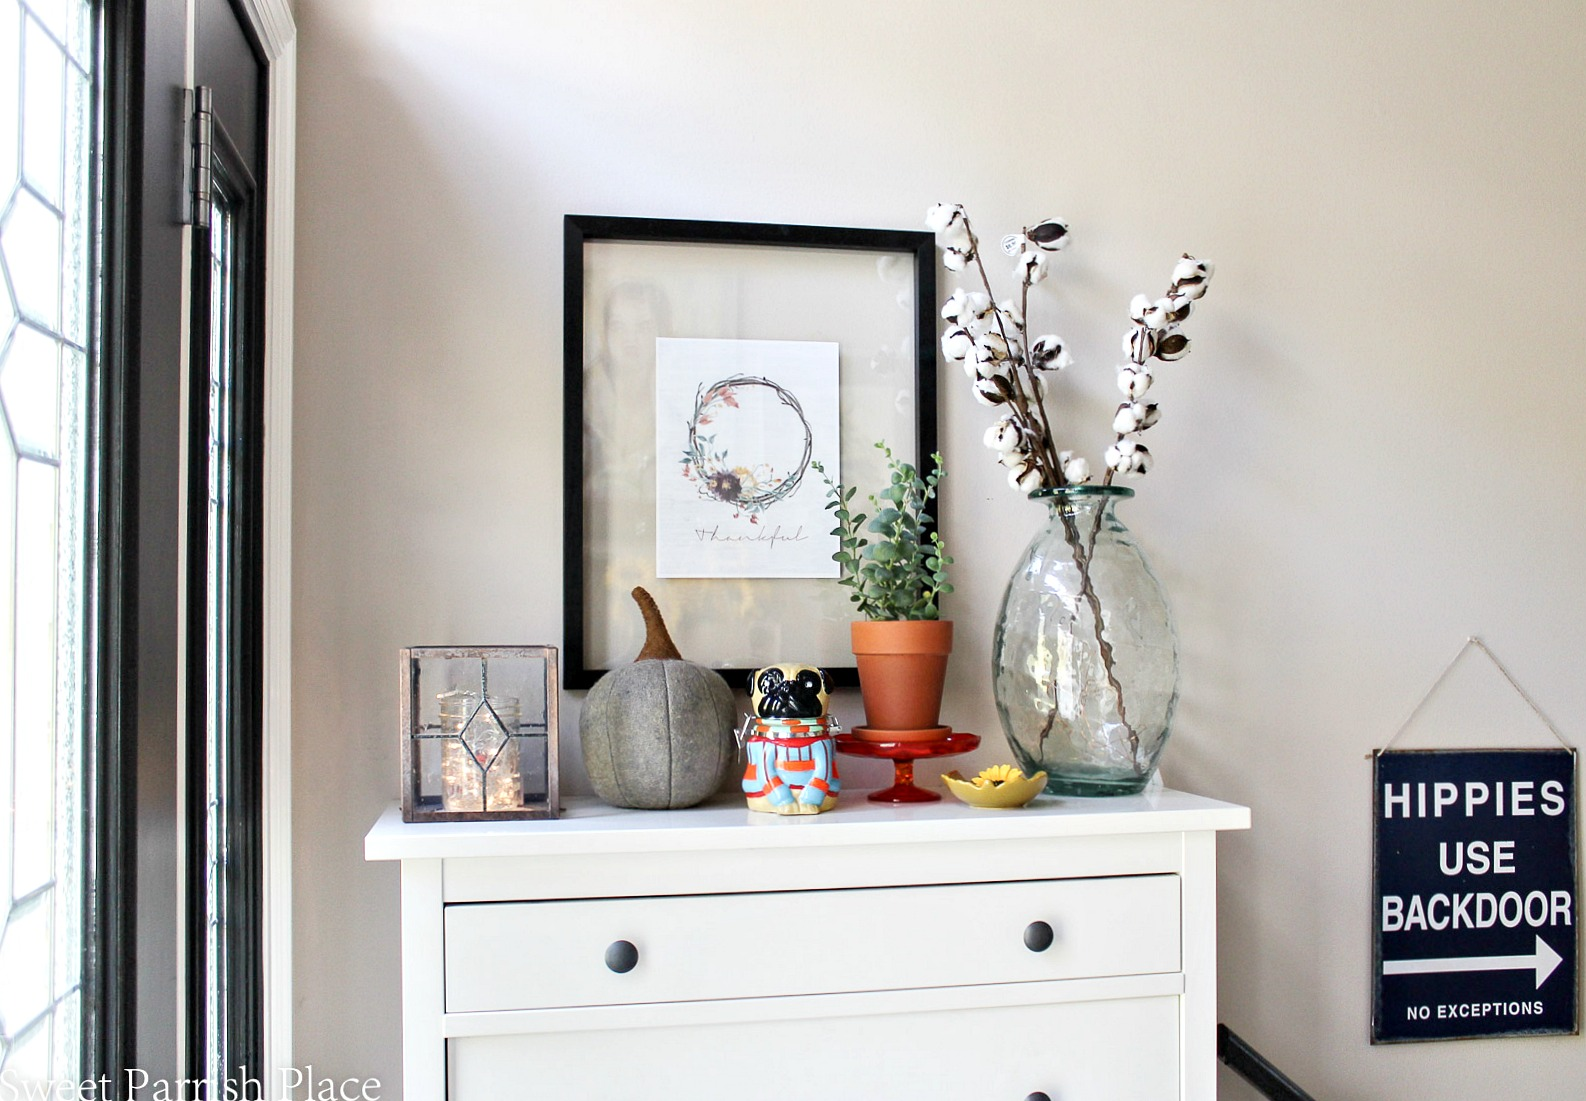 Today I'm bringing you some cozy fall goodness with the first part of my Fall home tour.